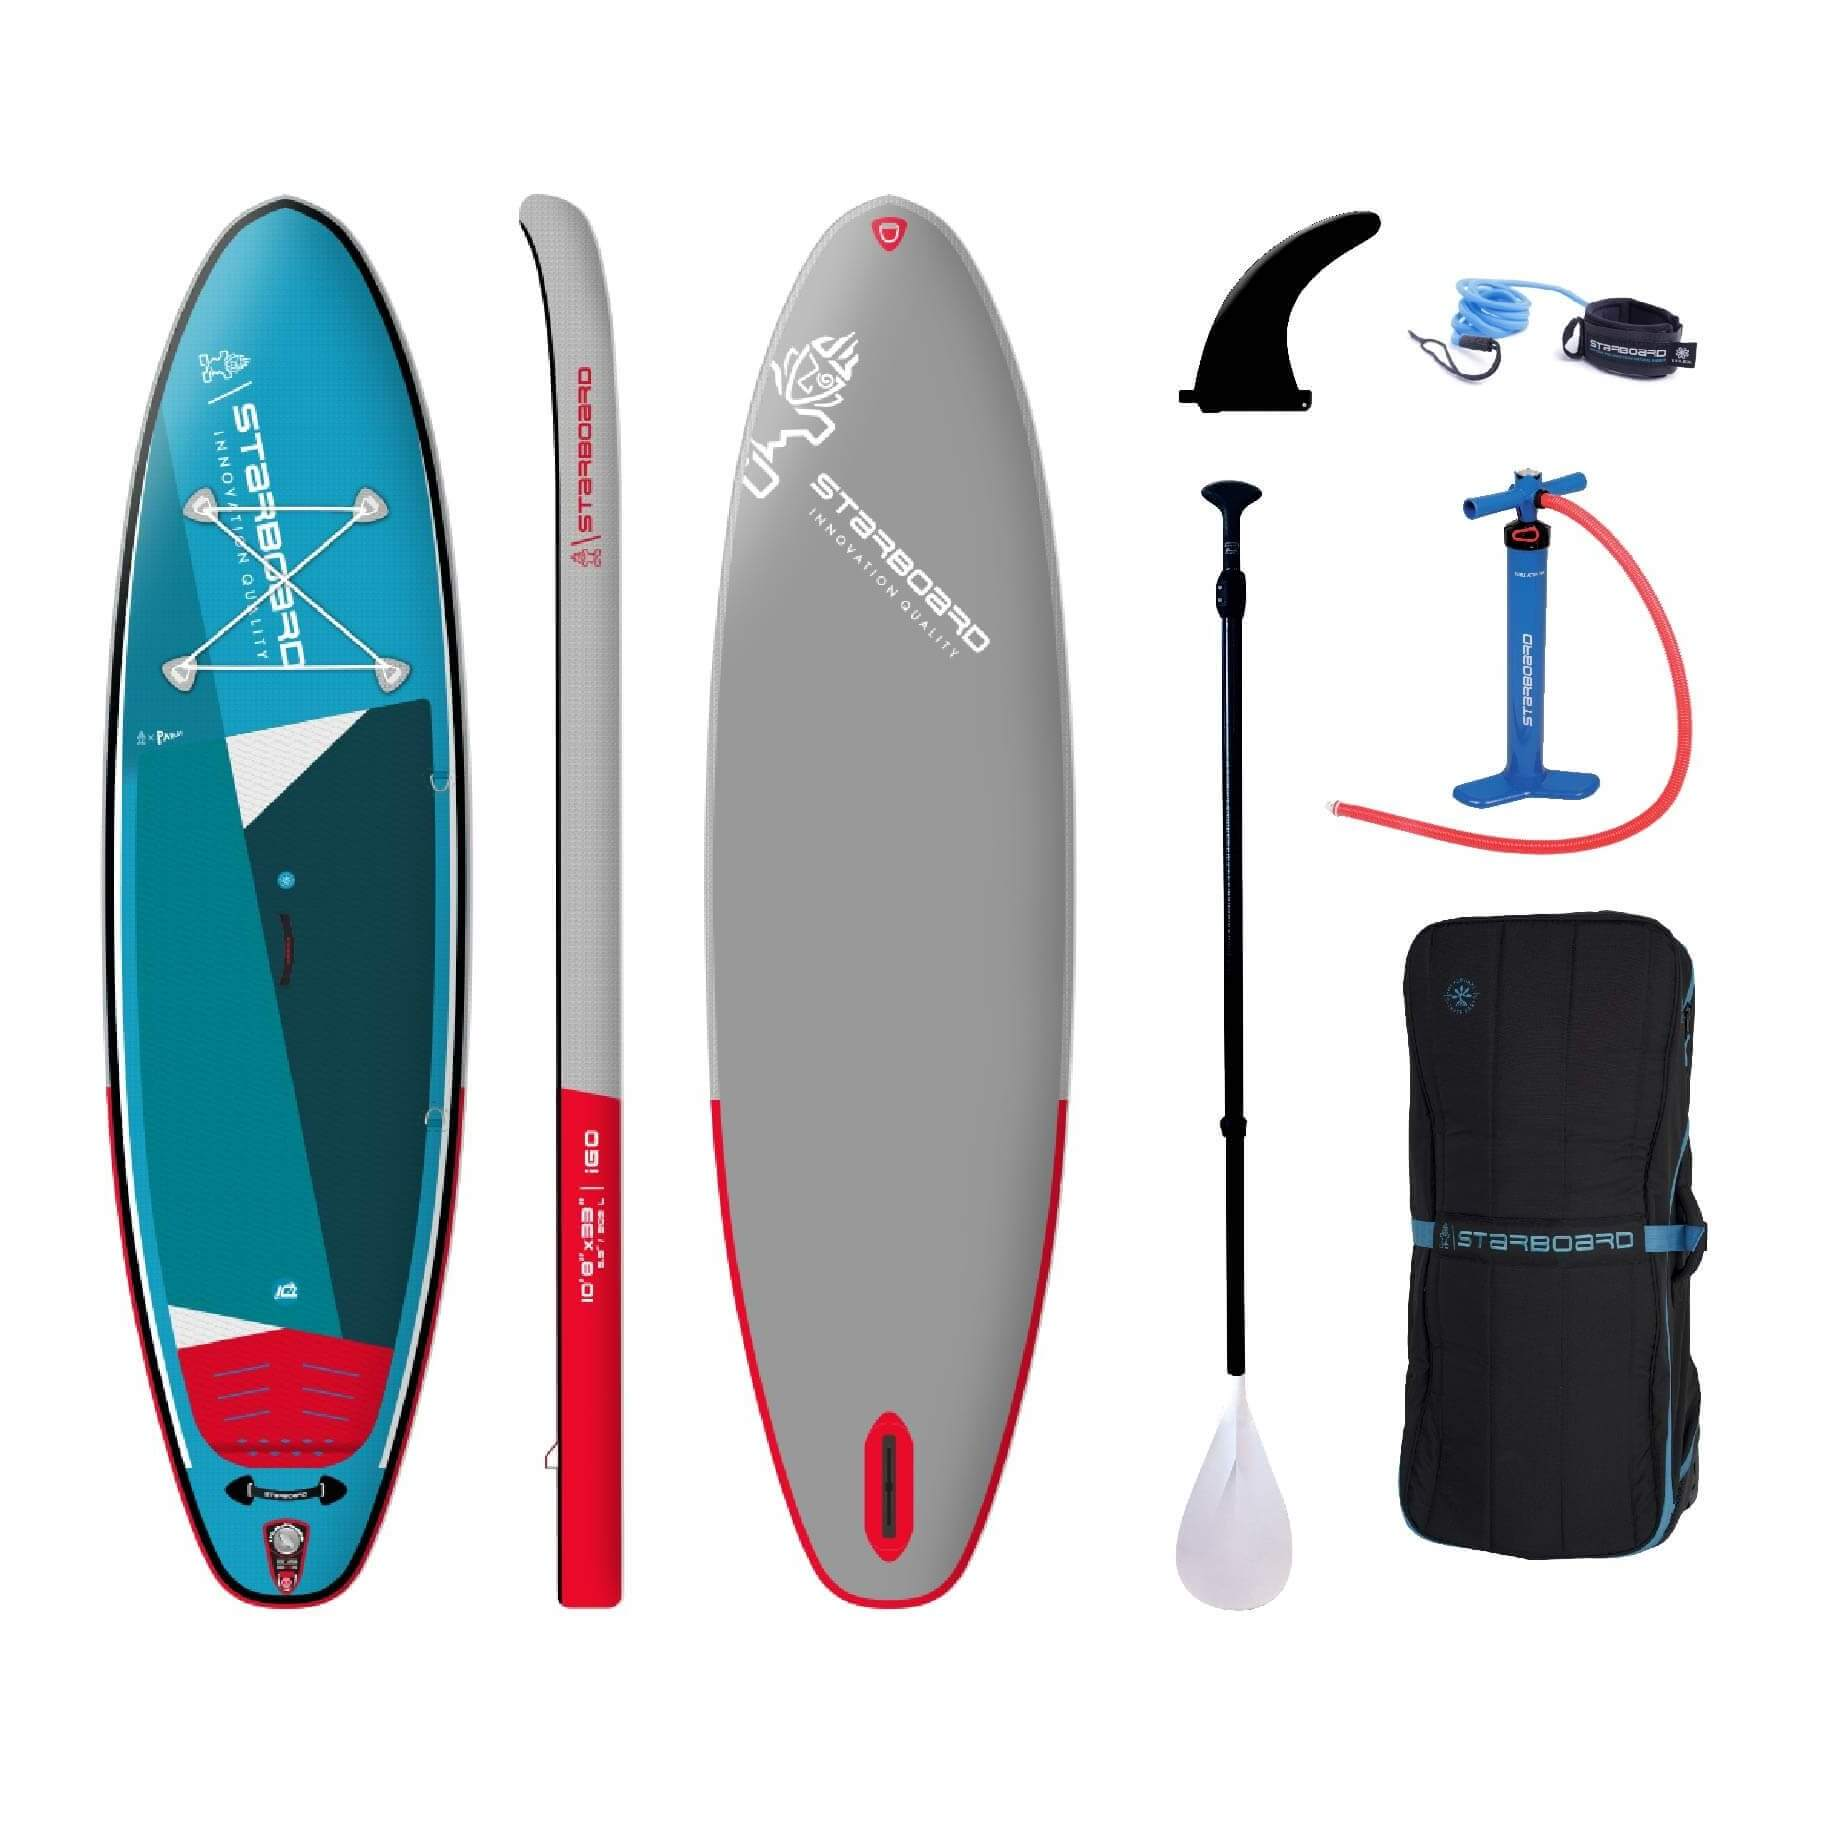 2022 Starboard iGO Zen Inflatable Stand Up Paddle Board